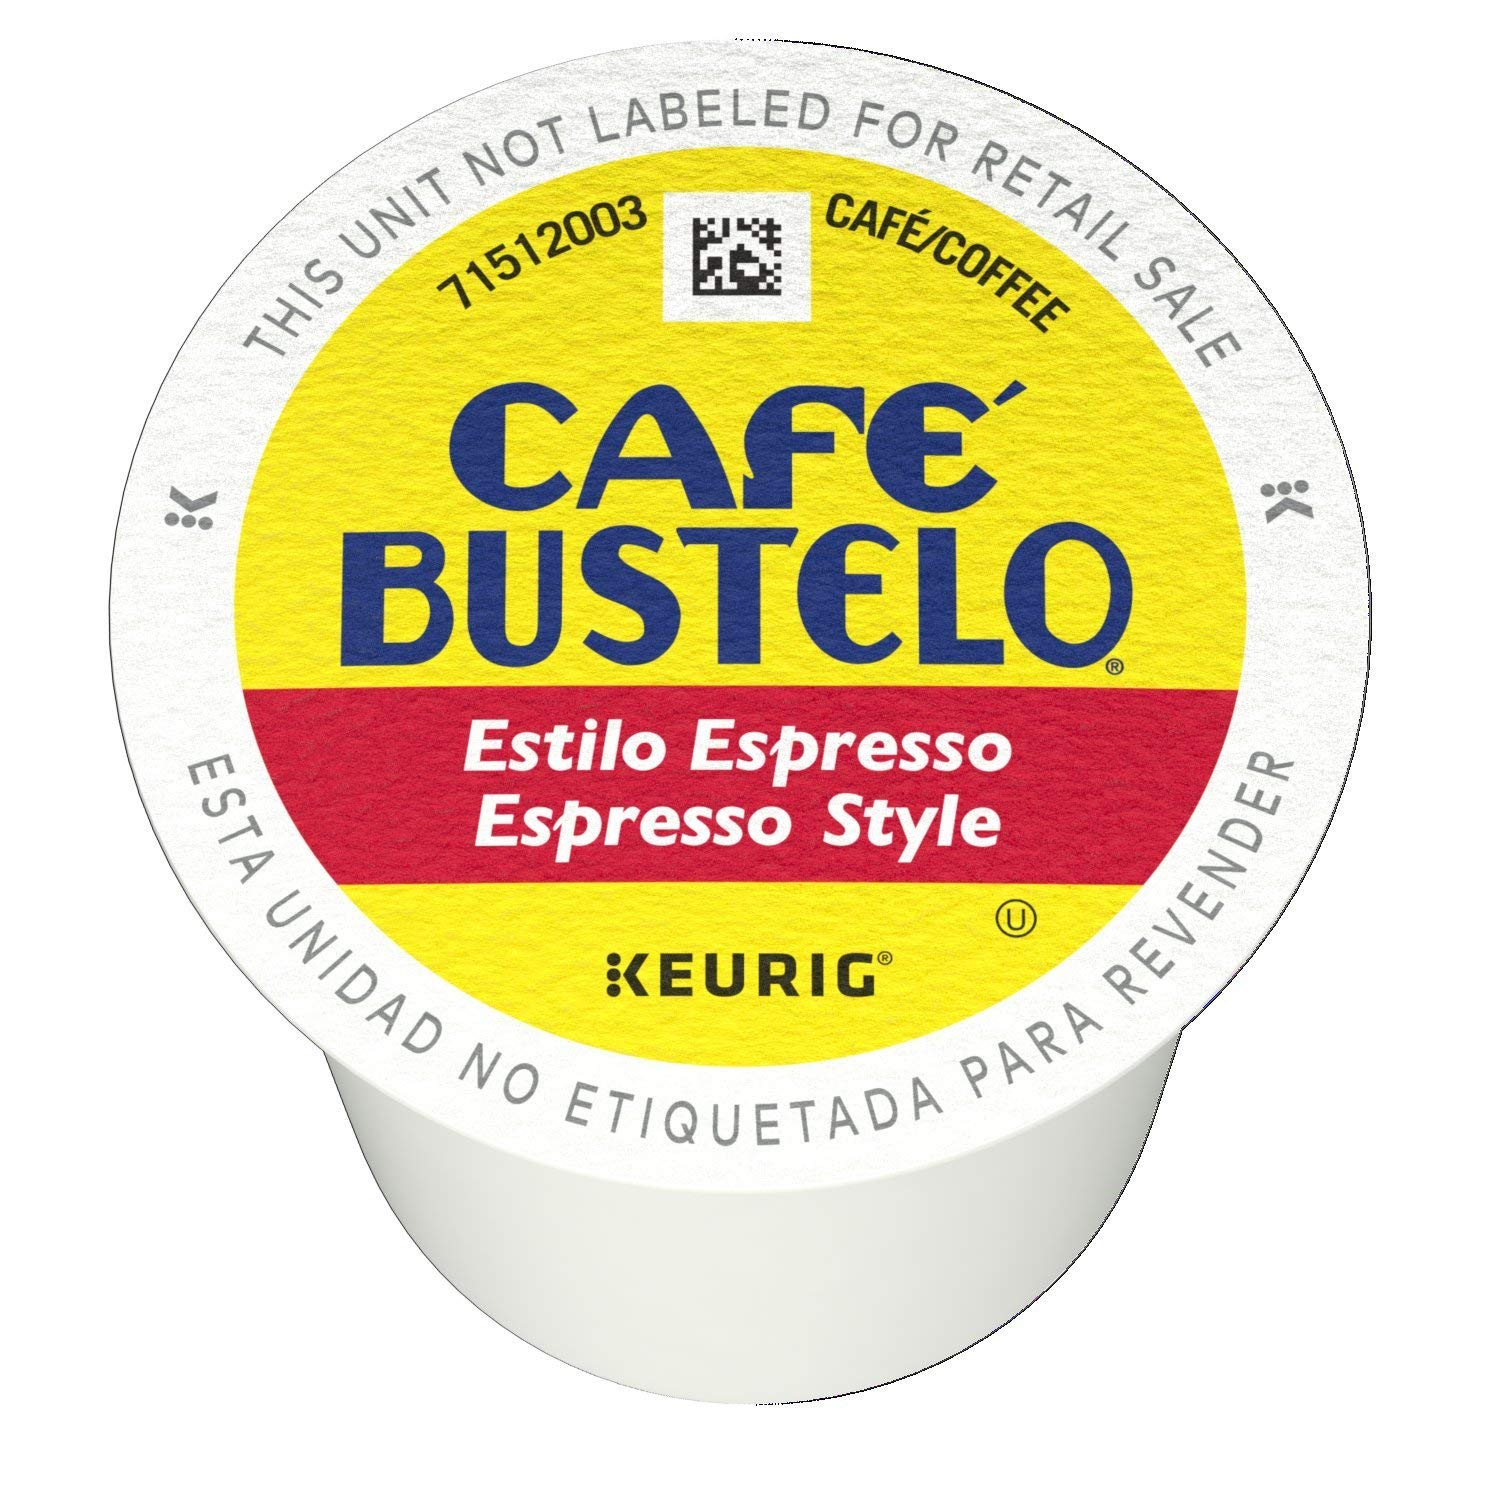 Café Bustelo Espresso Style K Cup Pods for Keurig Brewers, Dark Roast Coffee, 105 Count (105 Count)